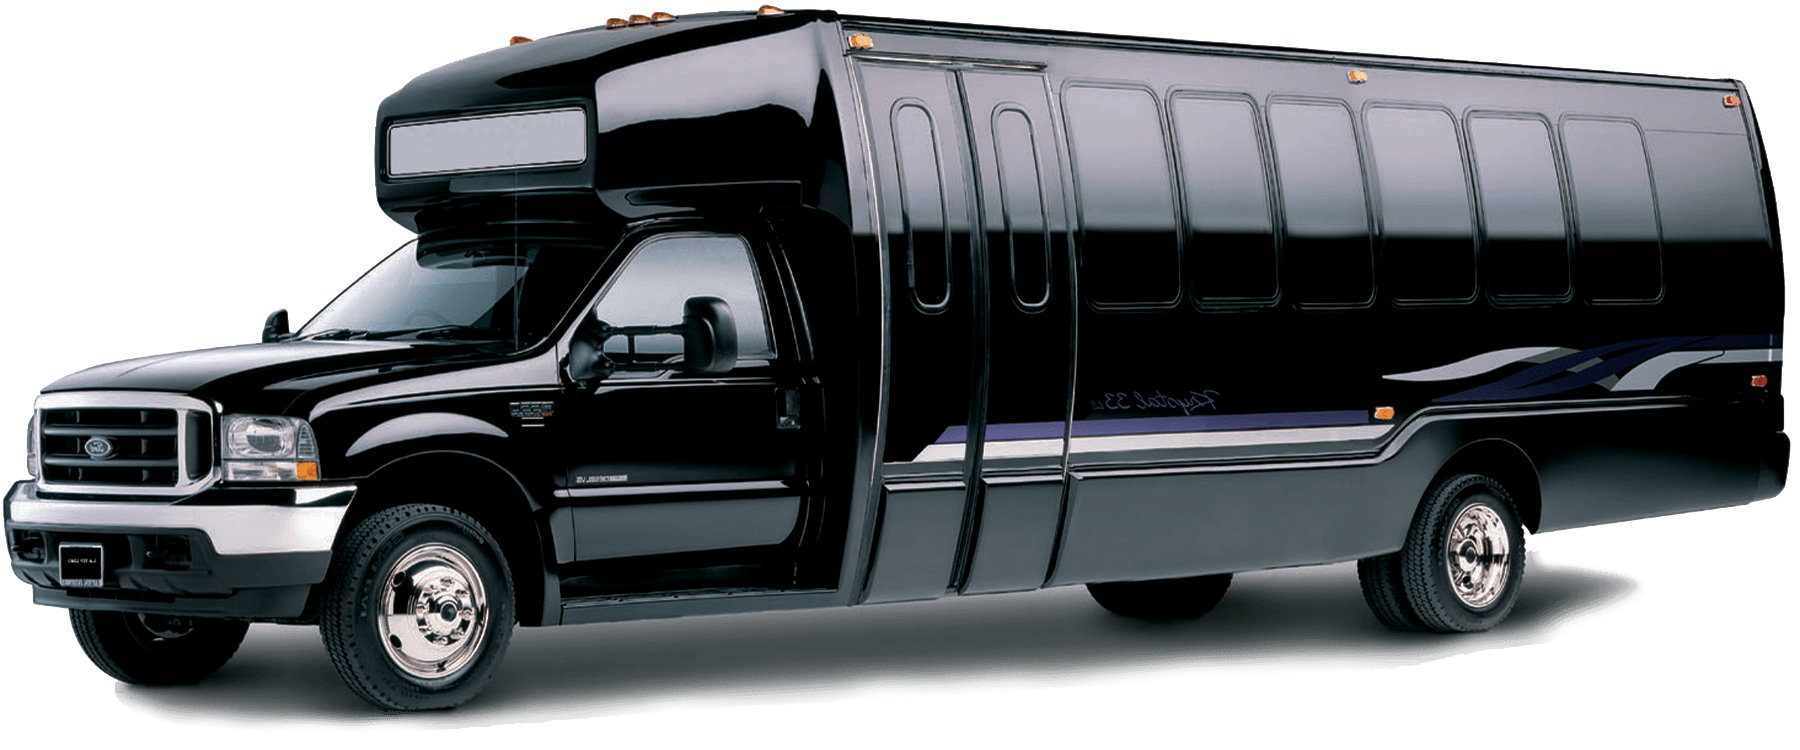 Finding a Limo Bus With Ample Cargo Space